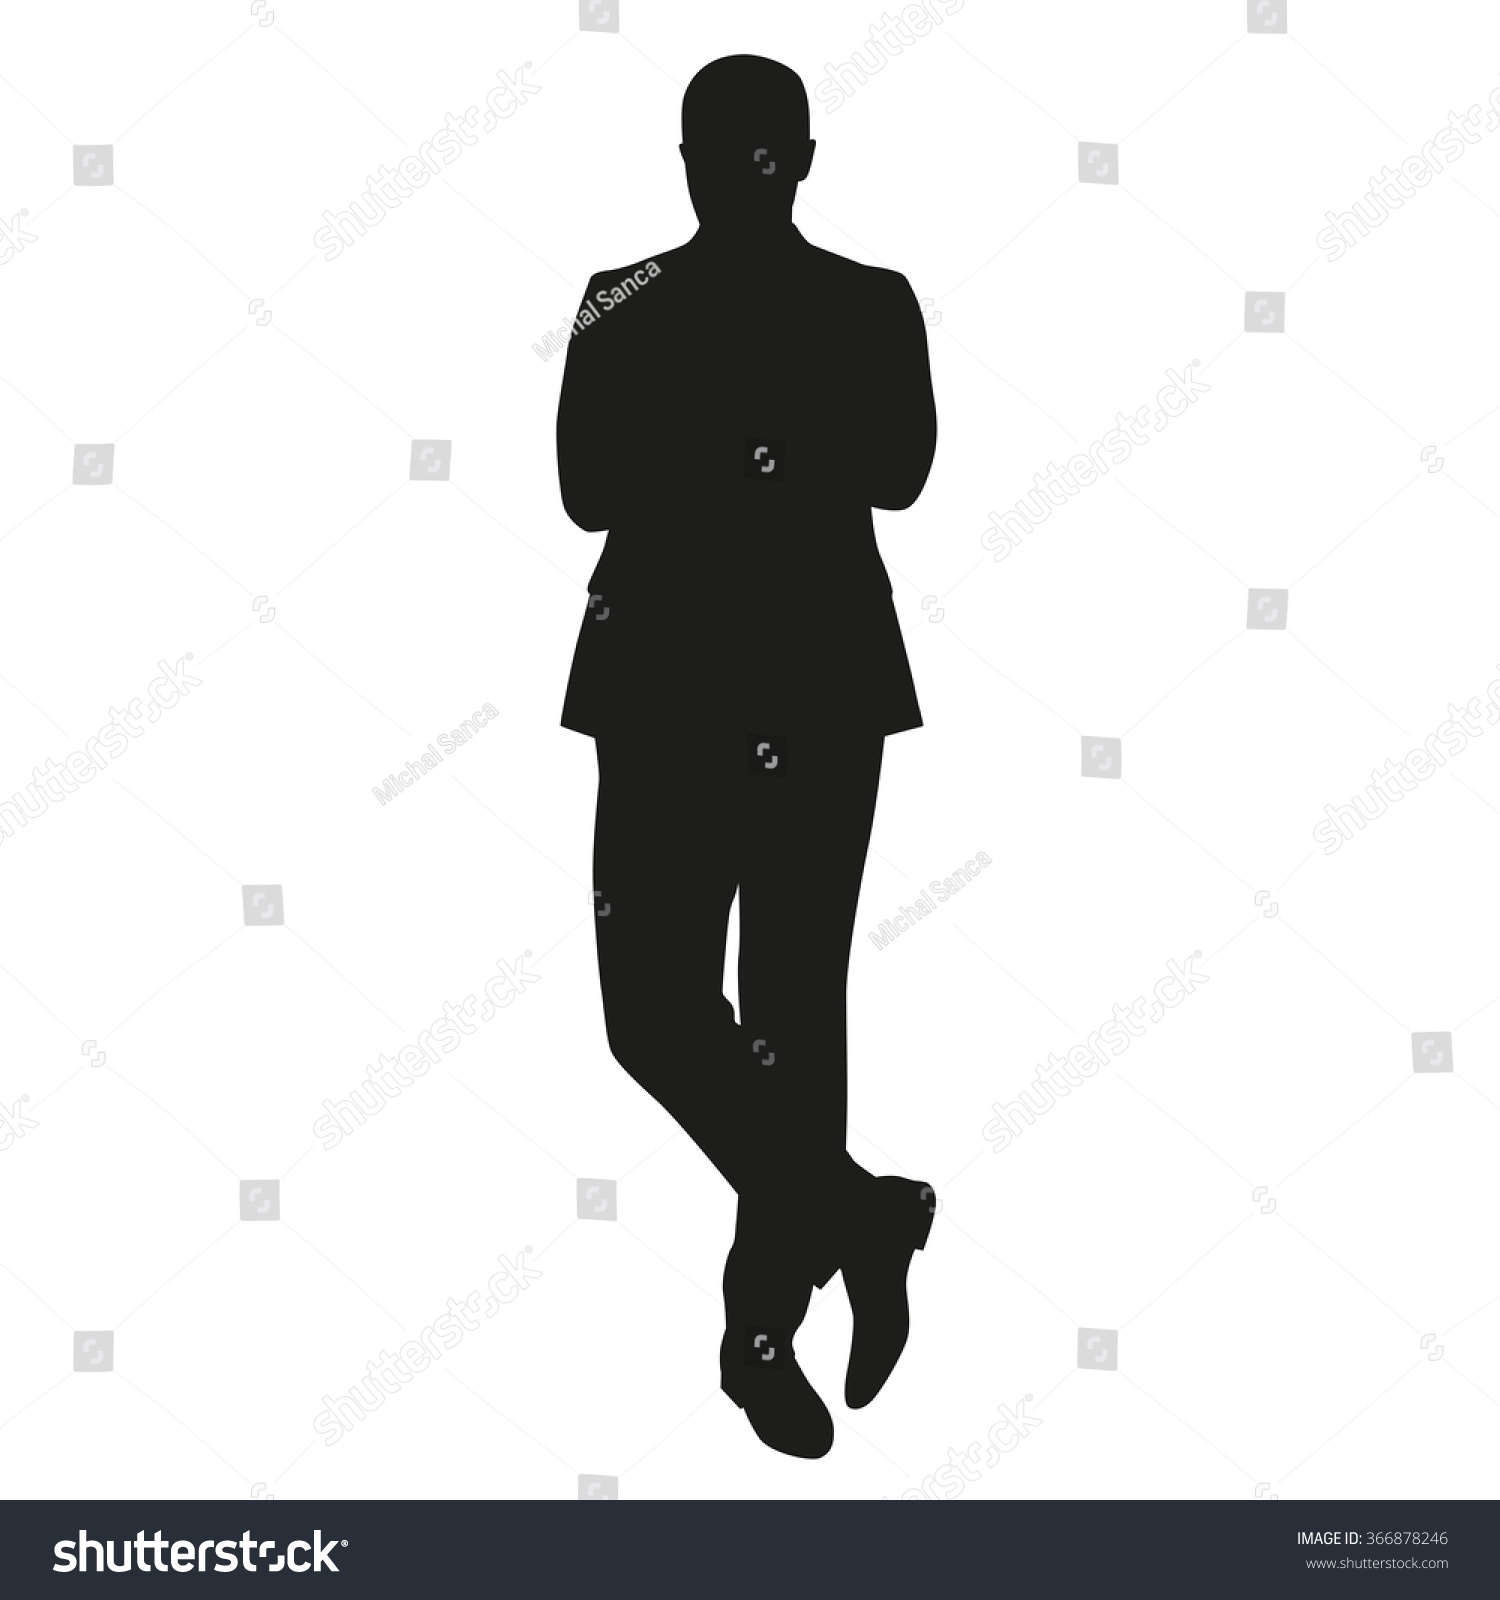 Business Man Silhouette. Standing Man In Suit Stock Vector